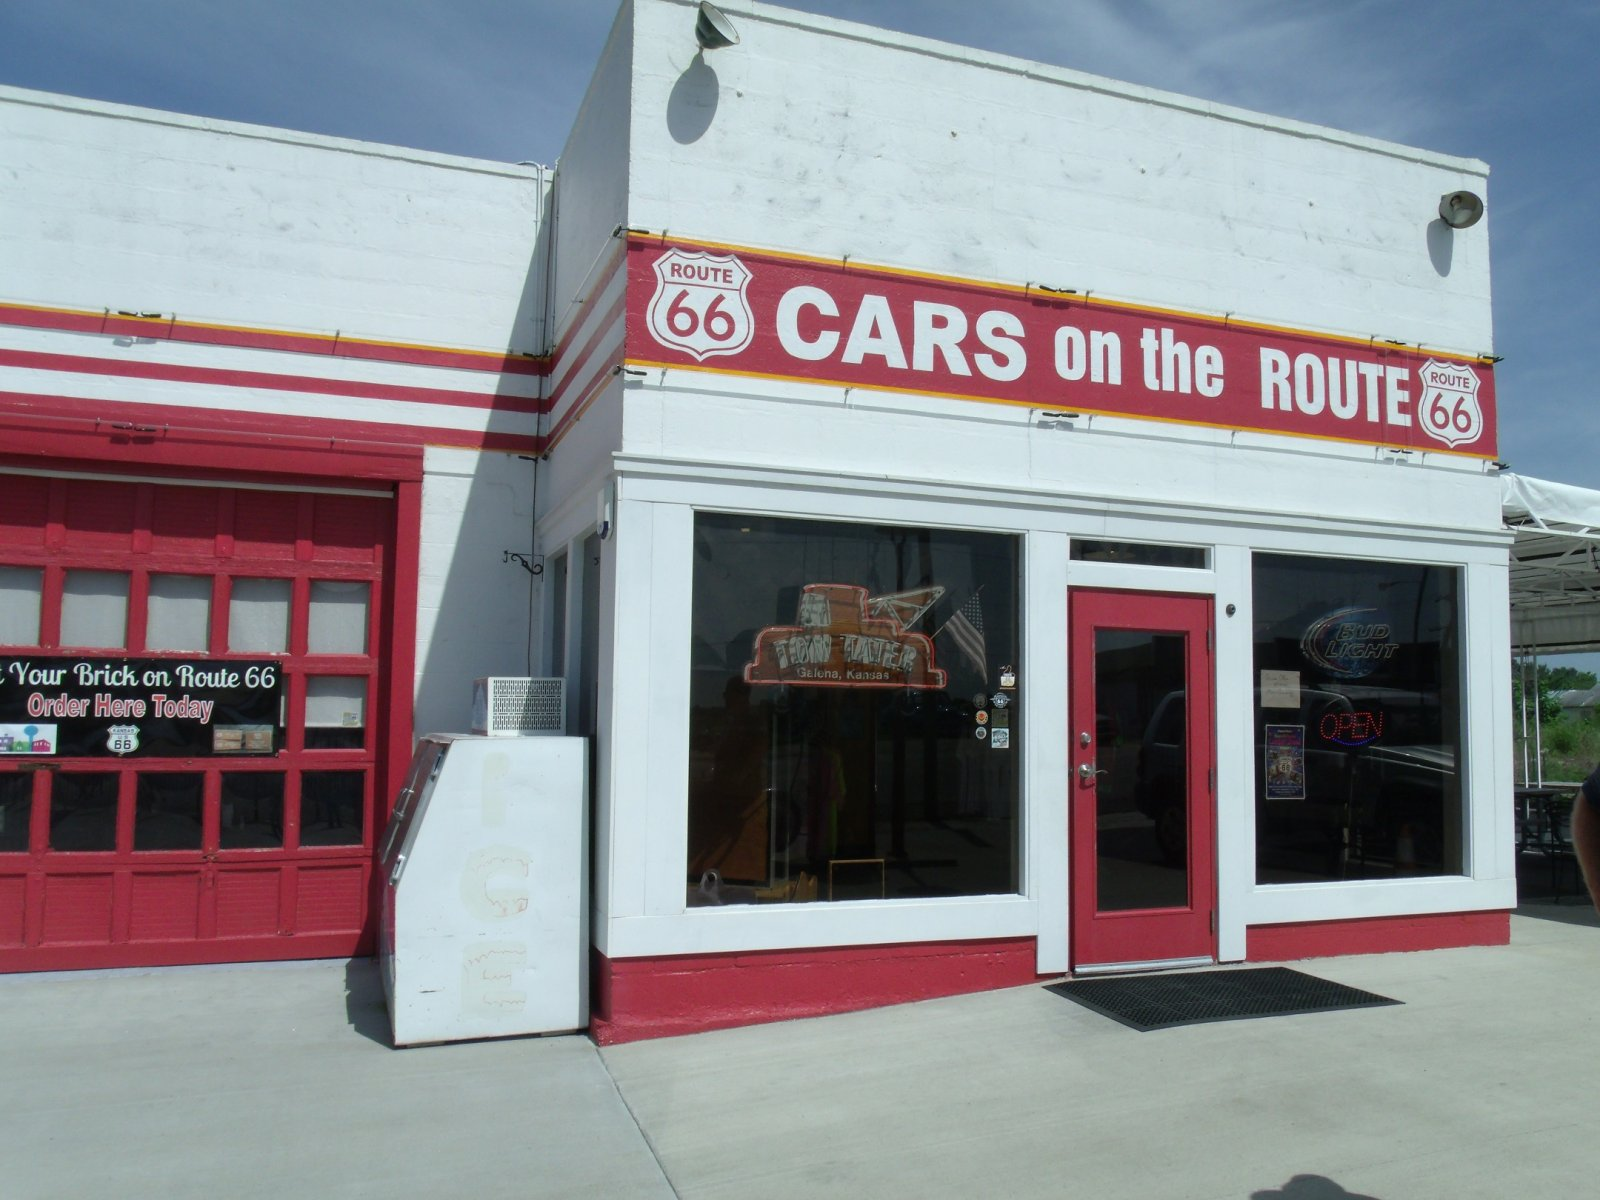 Route 66 day one 174 cars on route.jpg